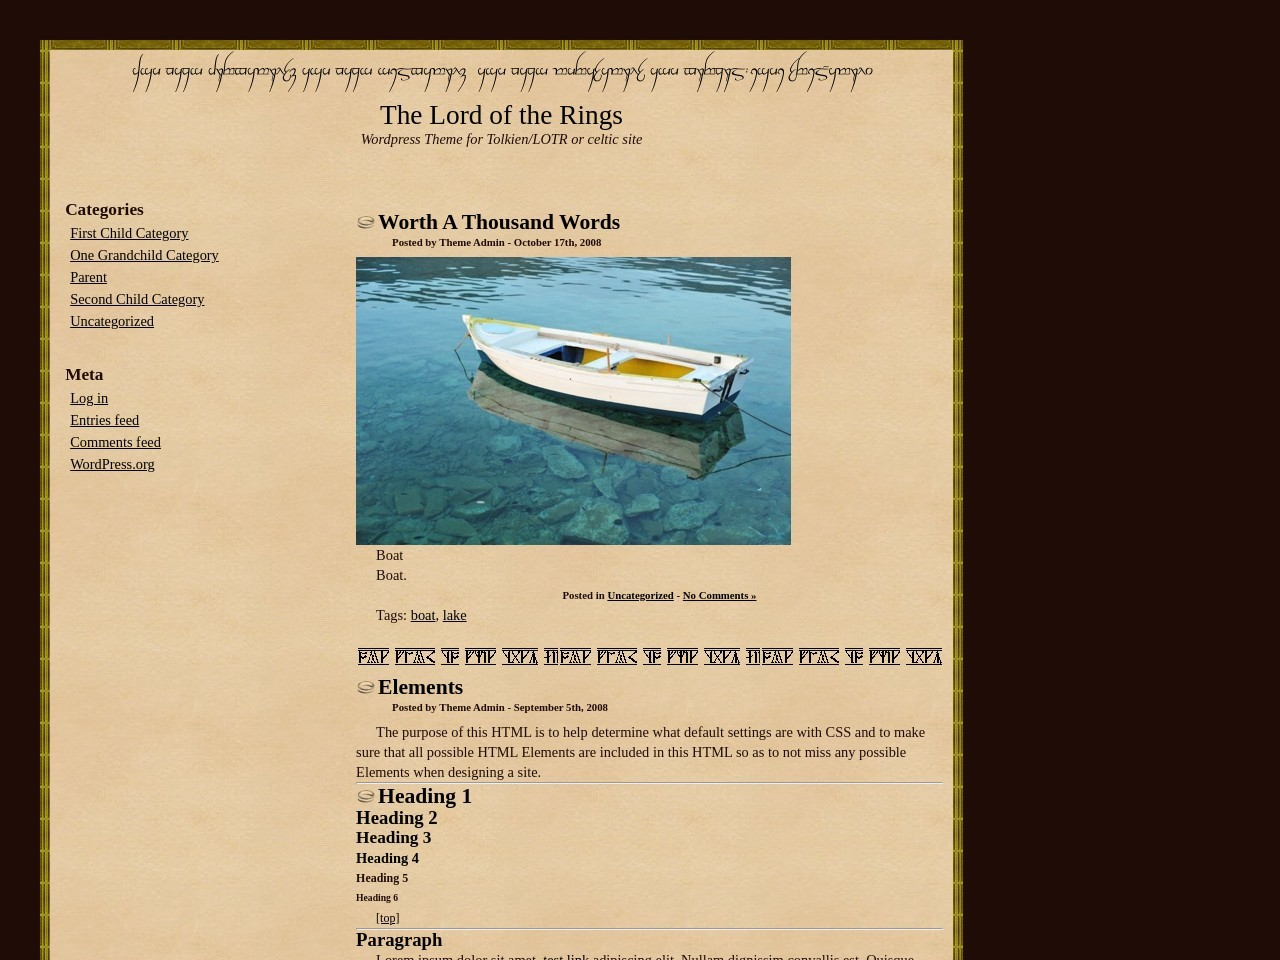 The Lord of the Rings WordPress Theme